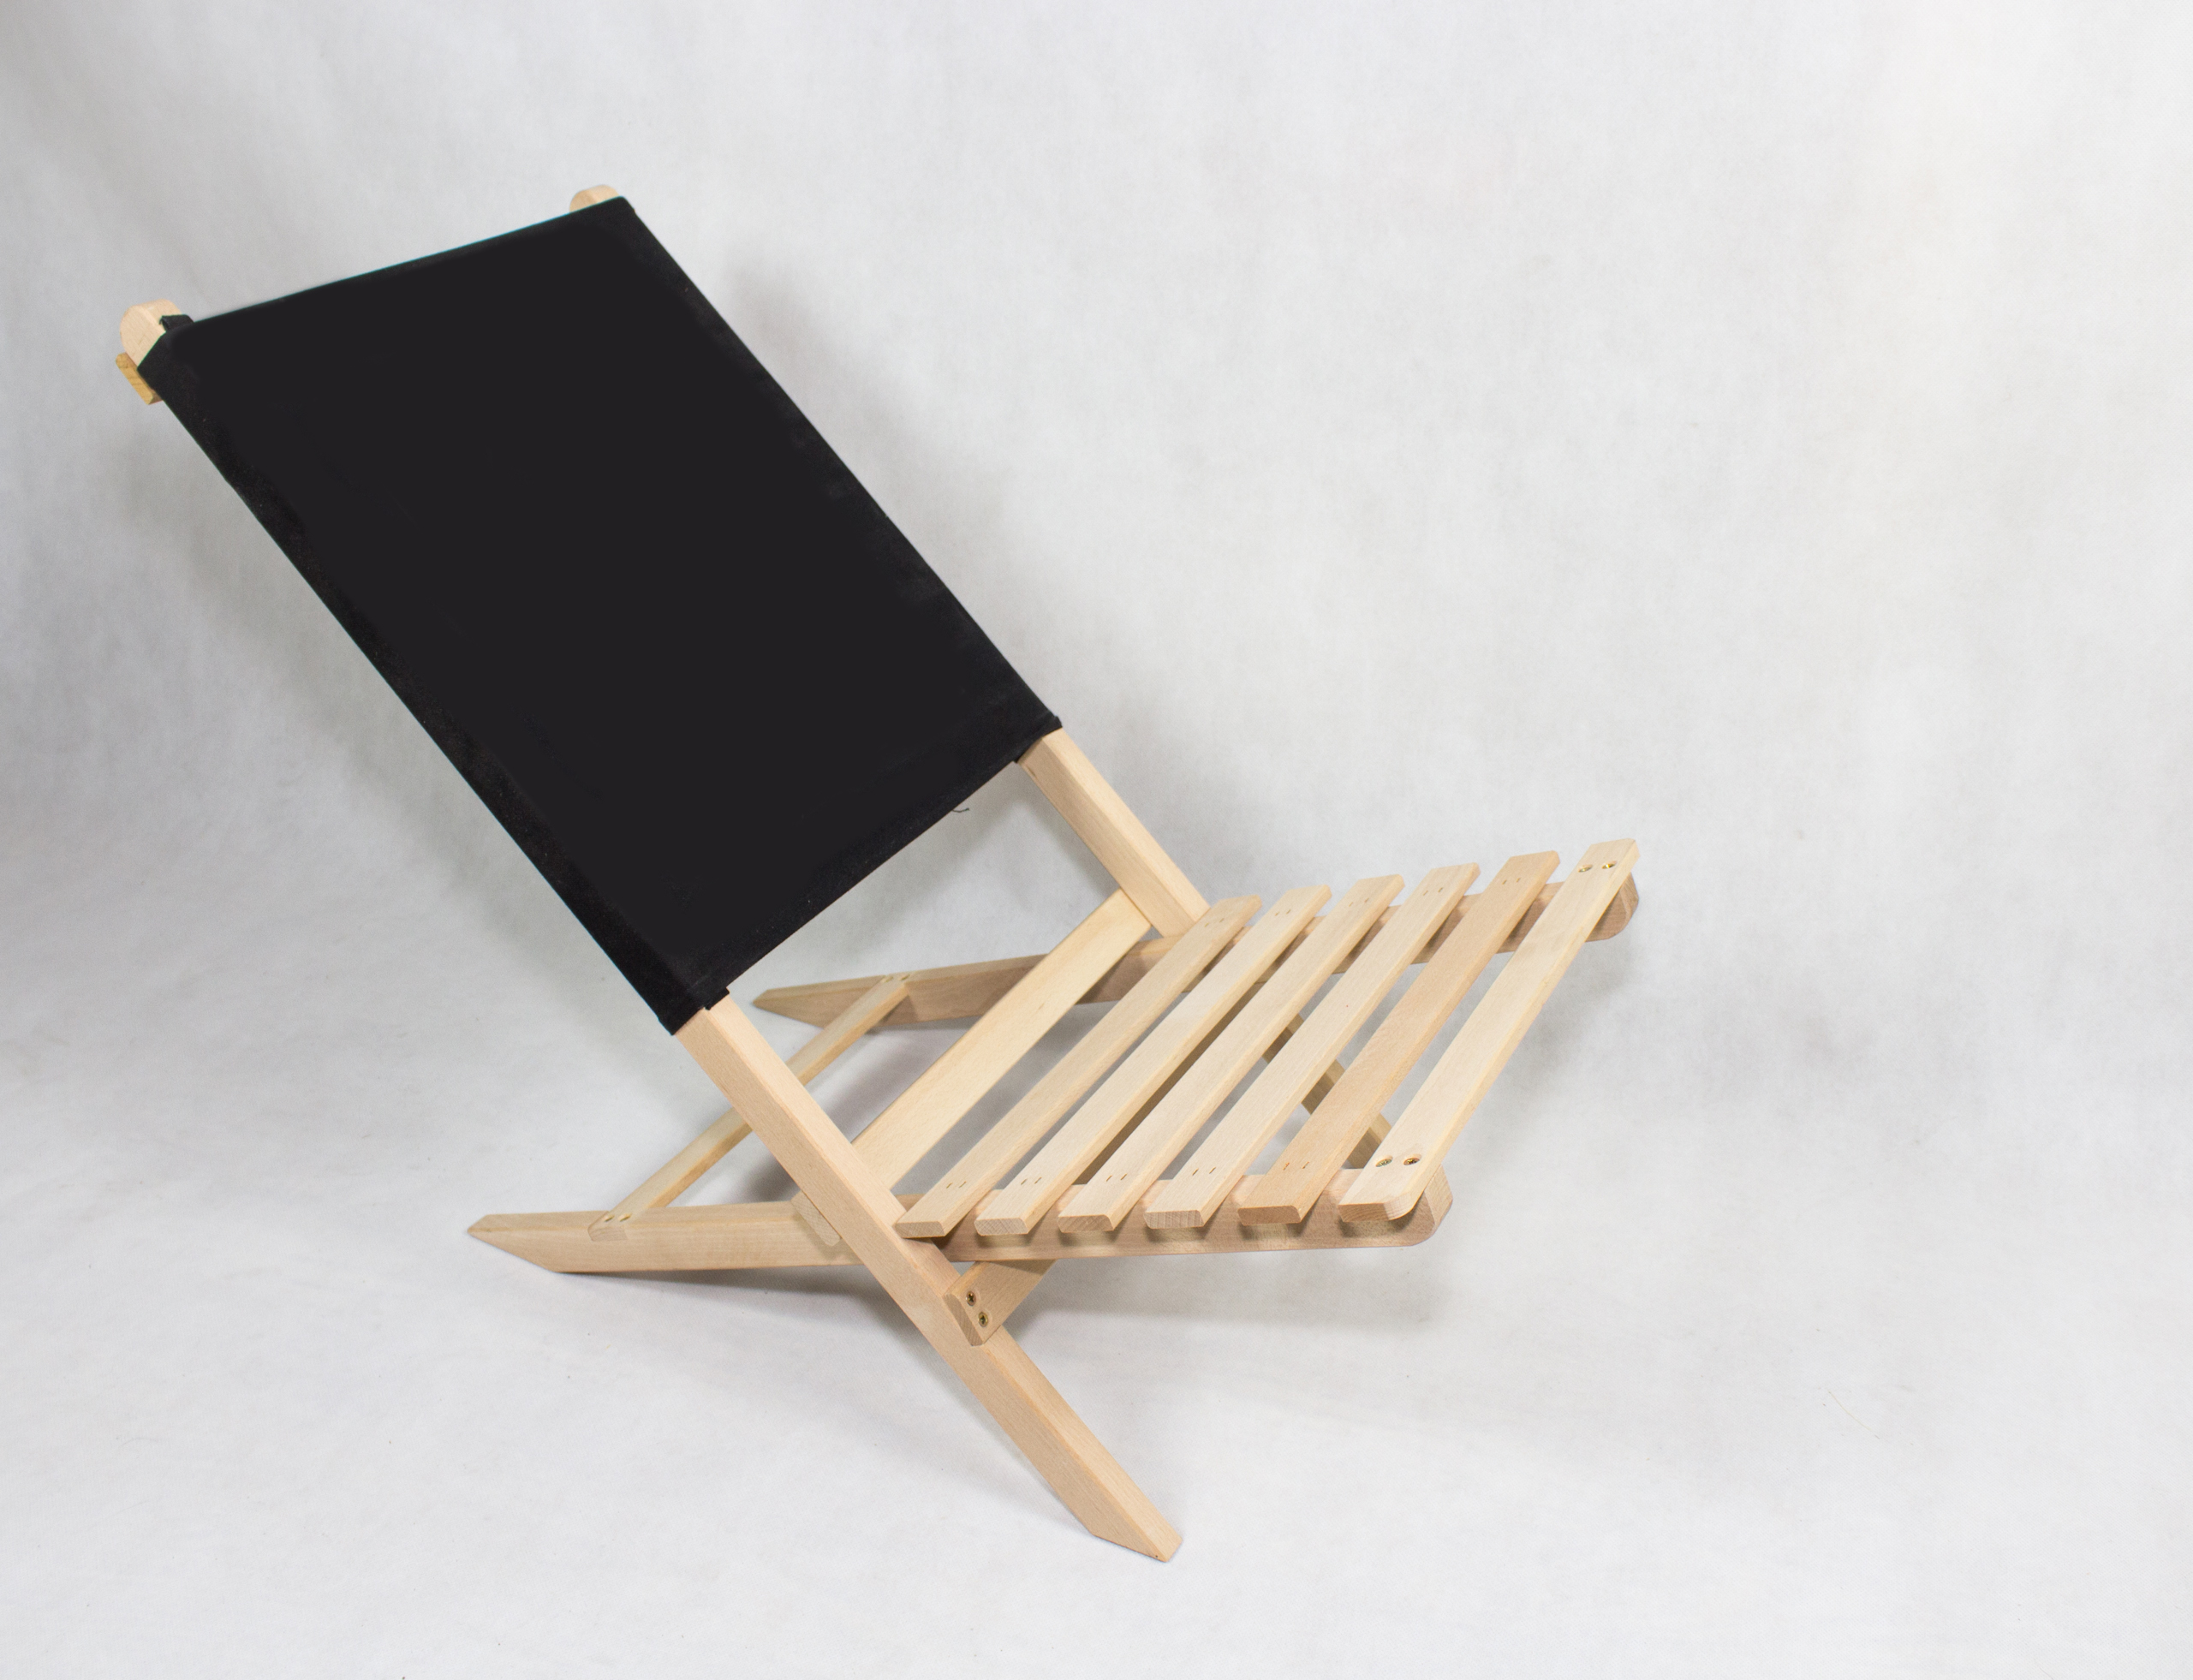 Folding Wood Beach Chair Wooden Beach Chair Stolgraw Wooden Boxes For Wine Beer Tea